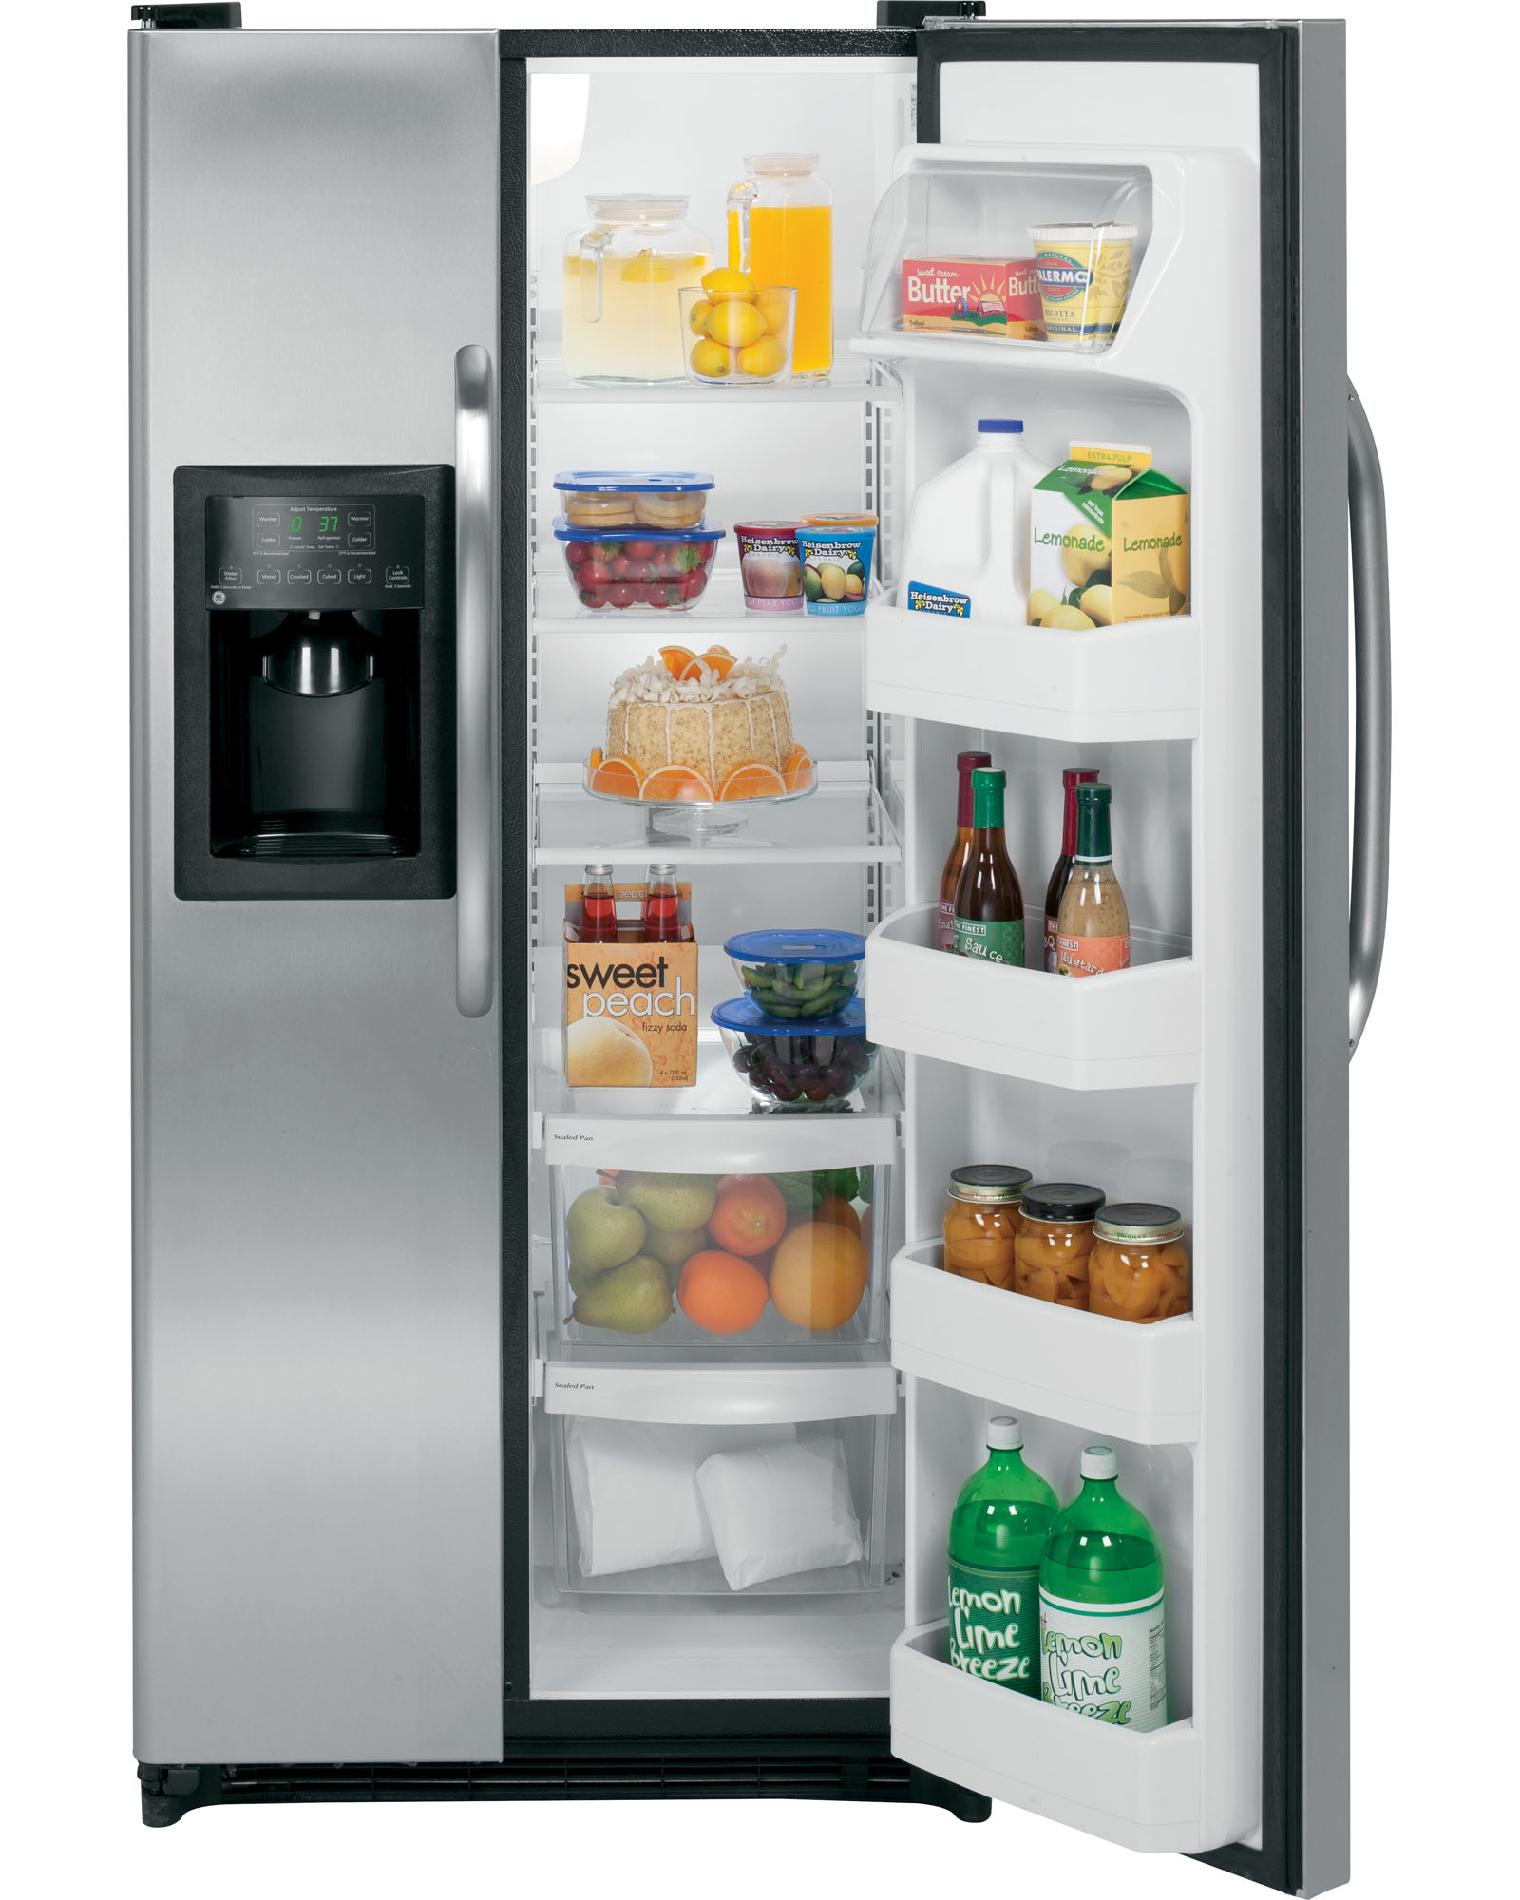 GE 20 cu. ft. Side-By-Side Refrigerator w/ Dispenser - Stainless Steel